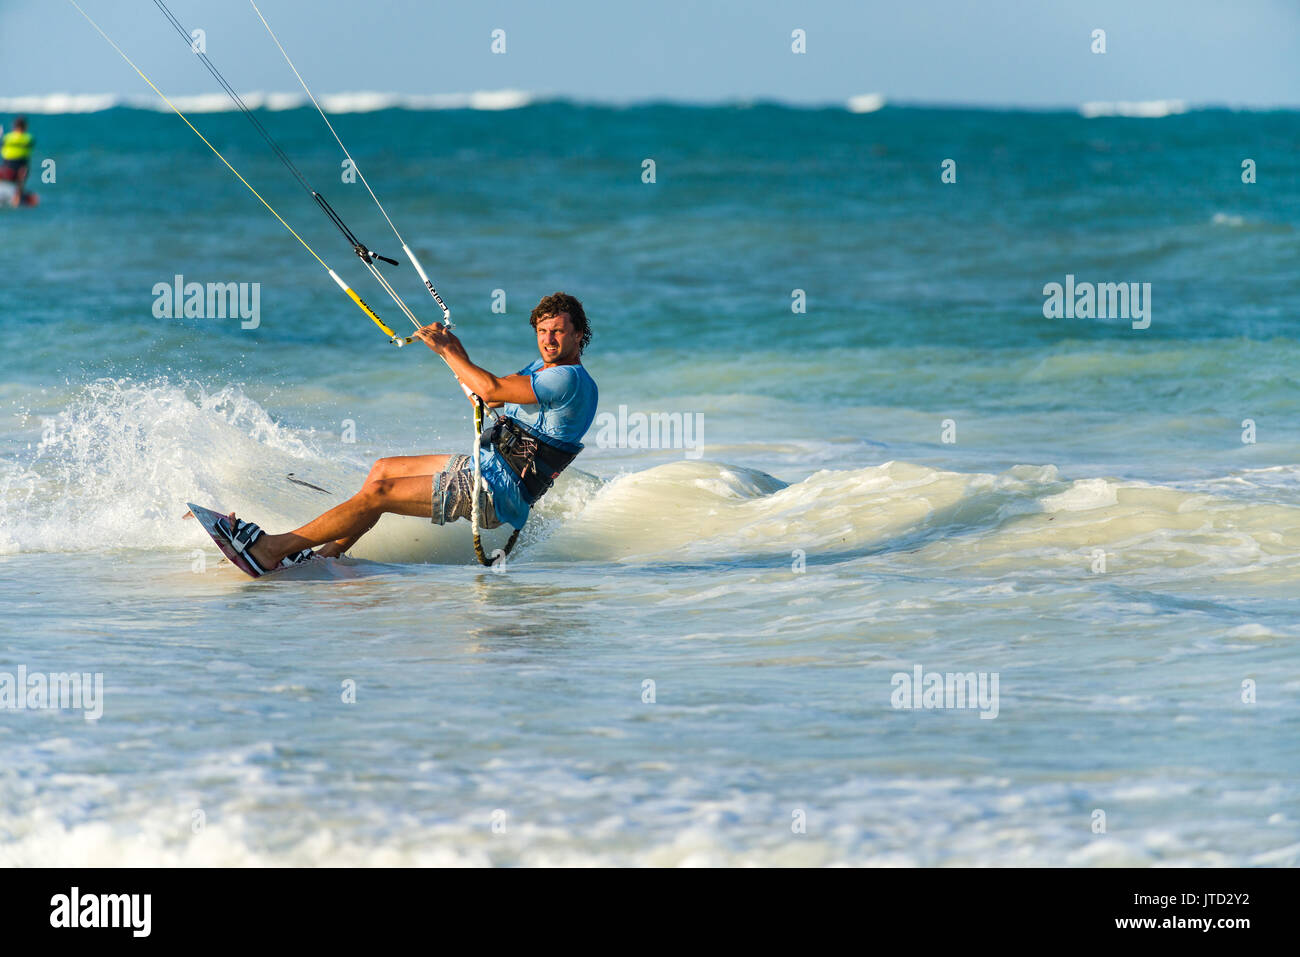 Kite surfer surfing close to shore on board in late afternoon light, Diani, Kenya - Stock Image